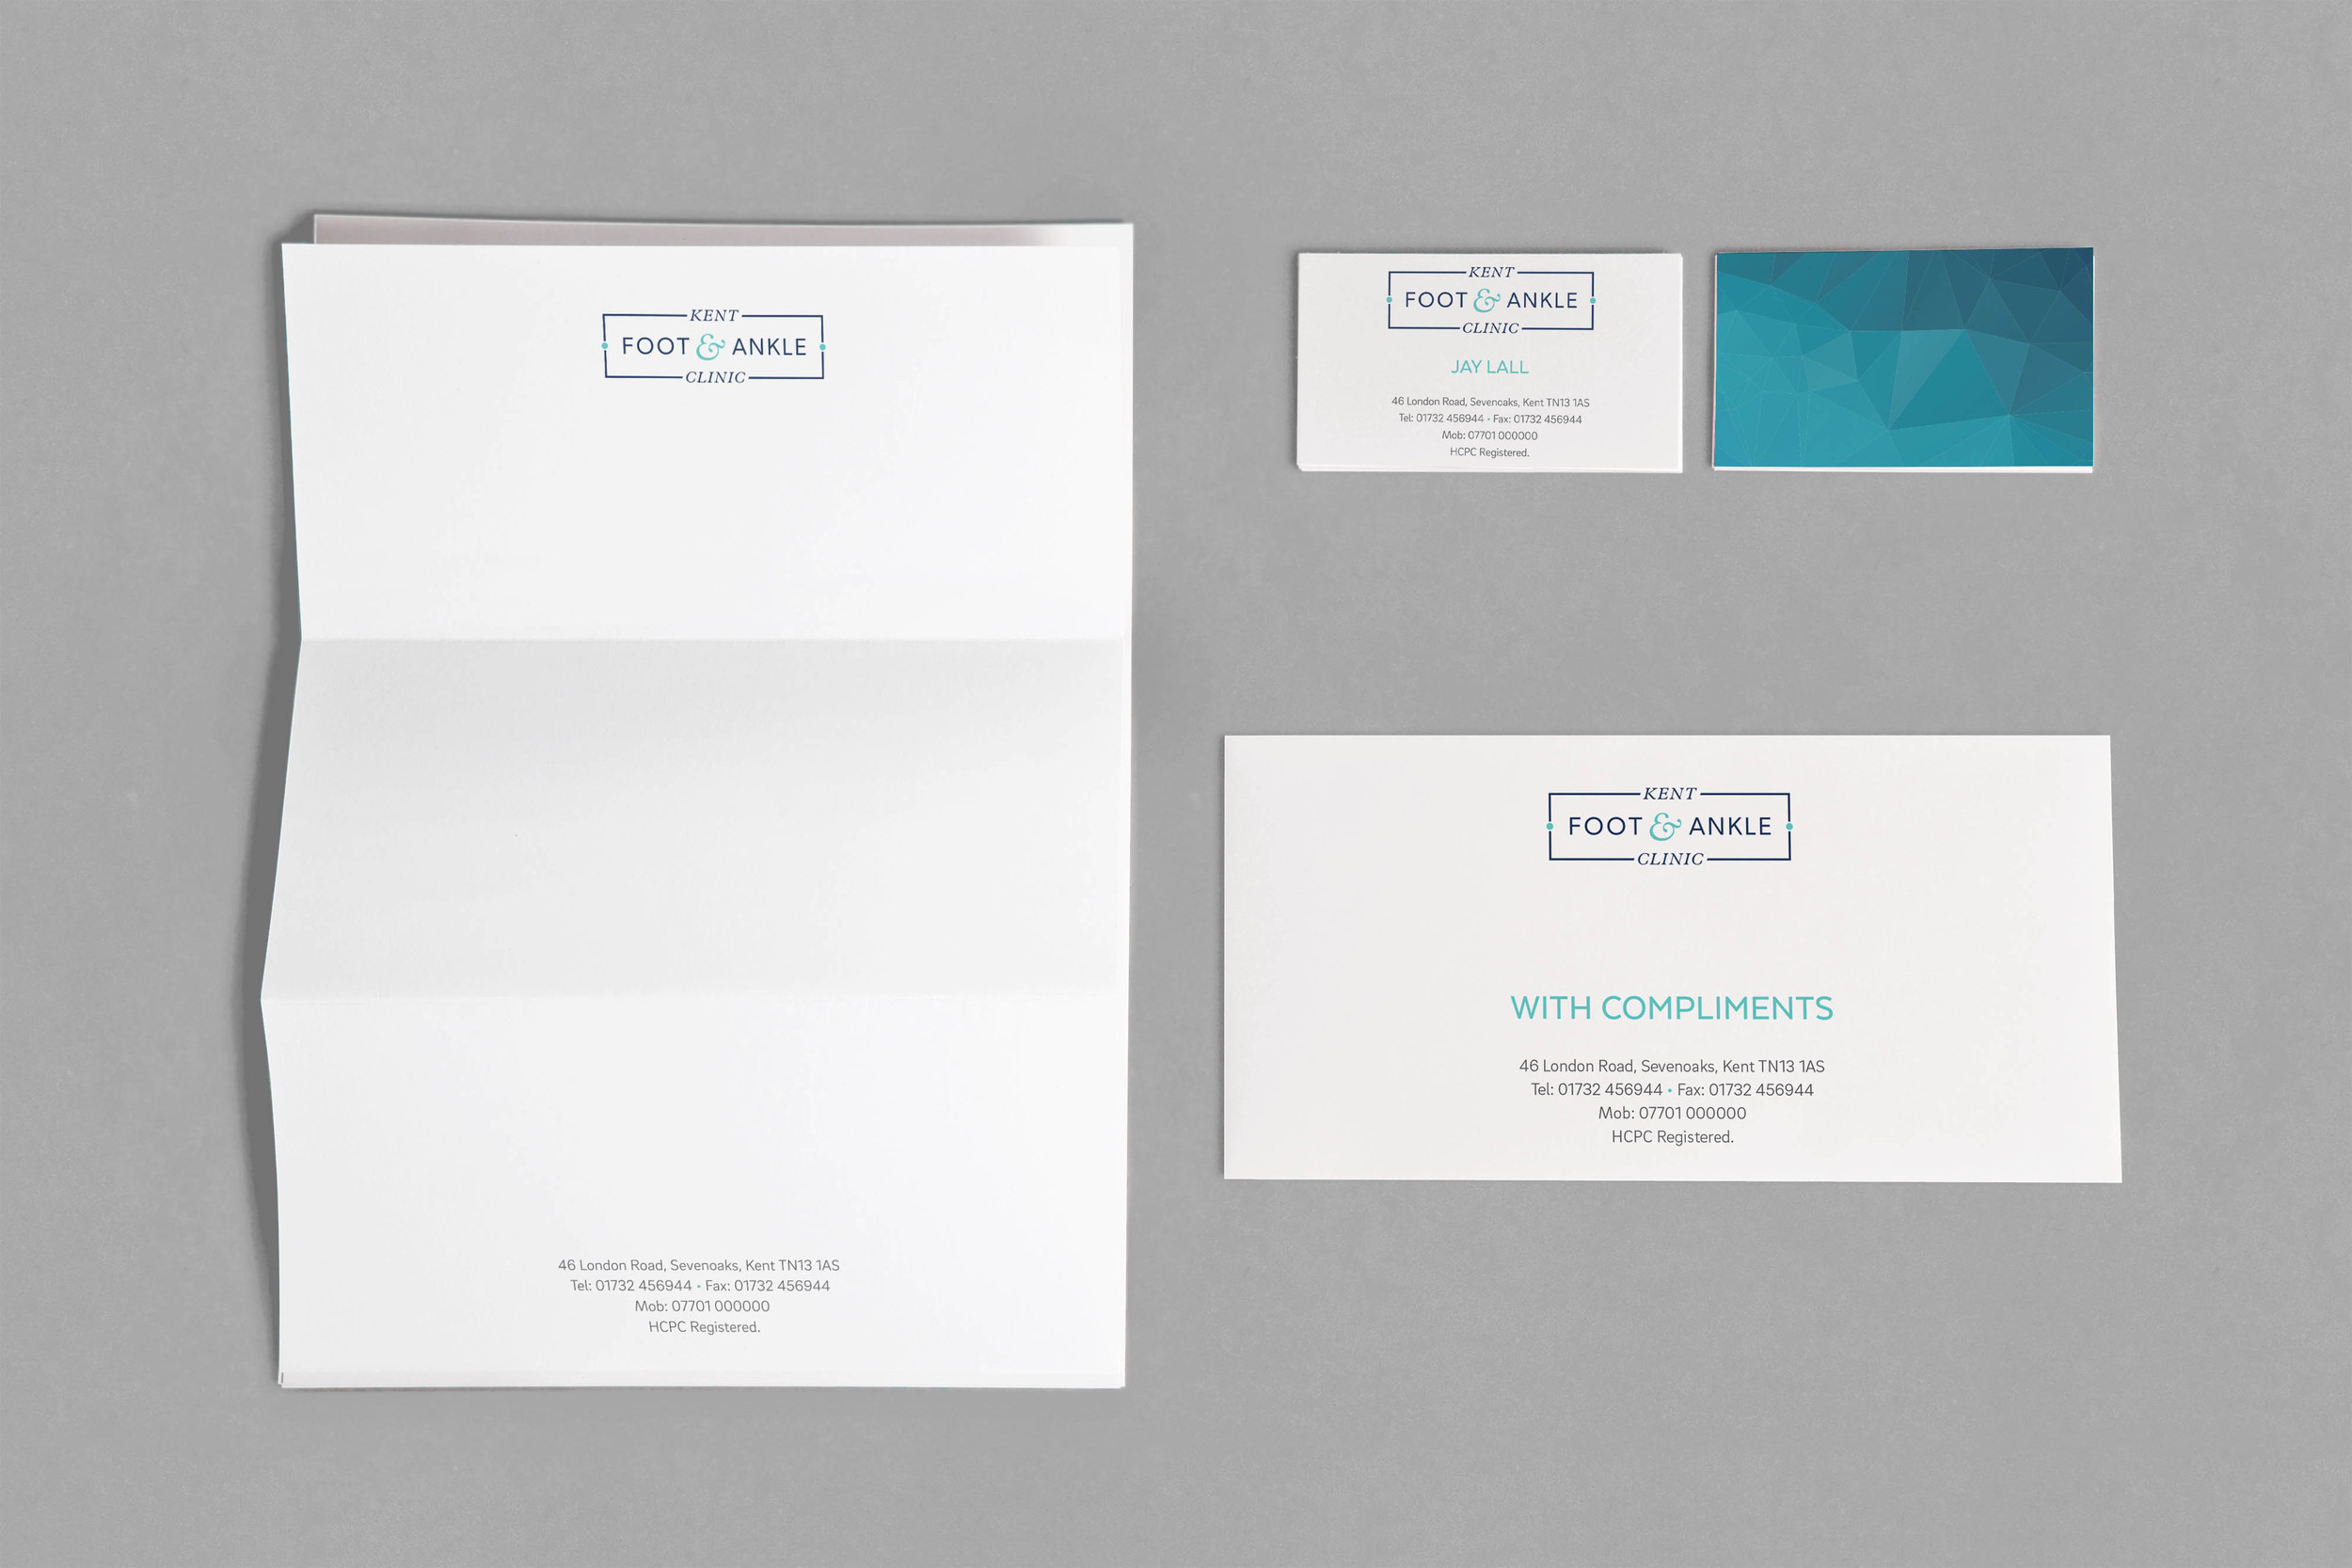 Kent Foot & Ankle Clinic branding by Ditto Creative, branding and logo design in Kent